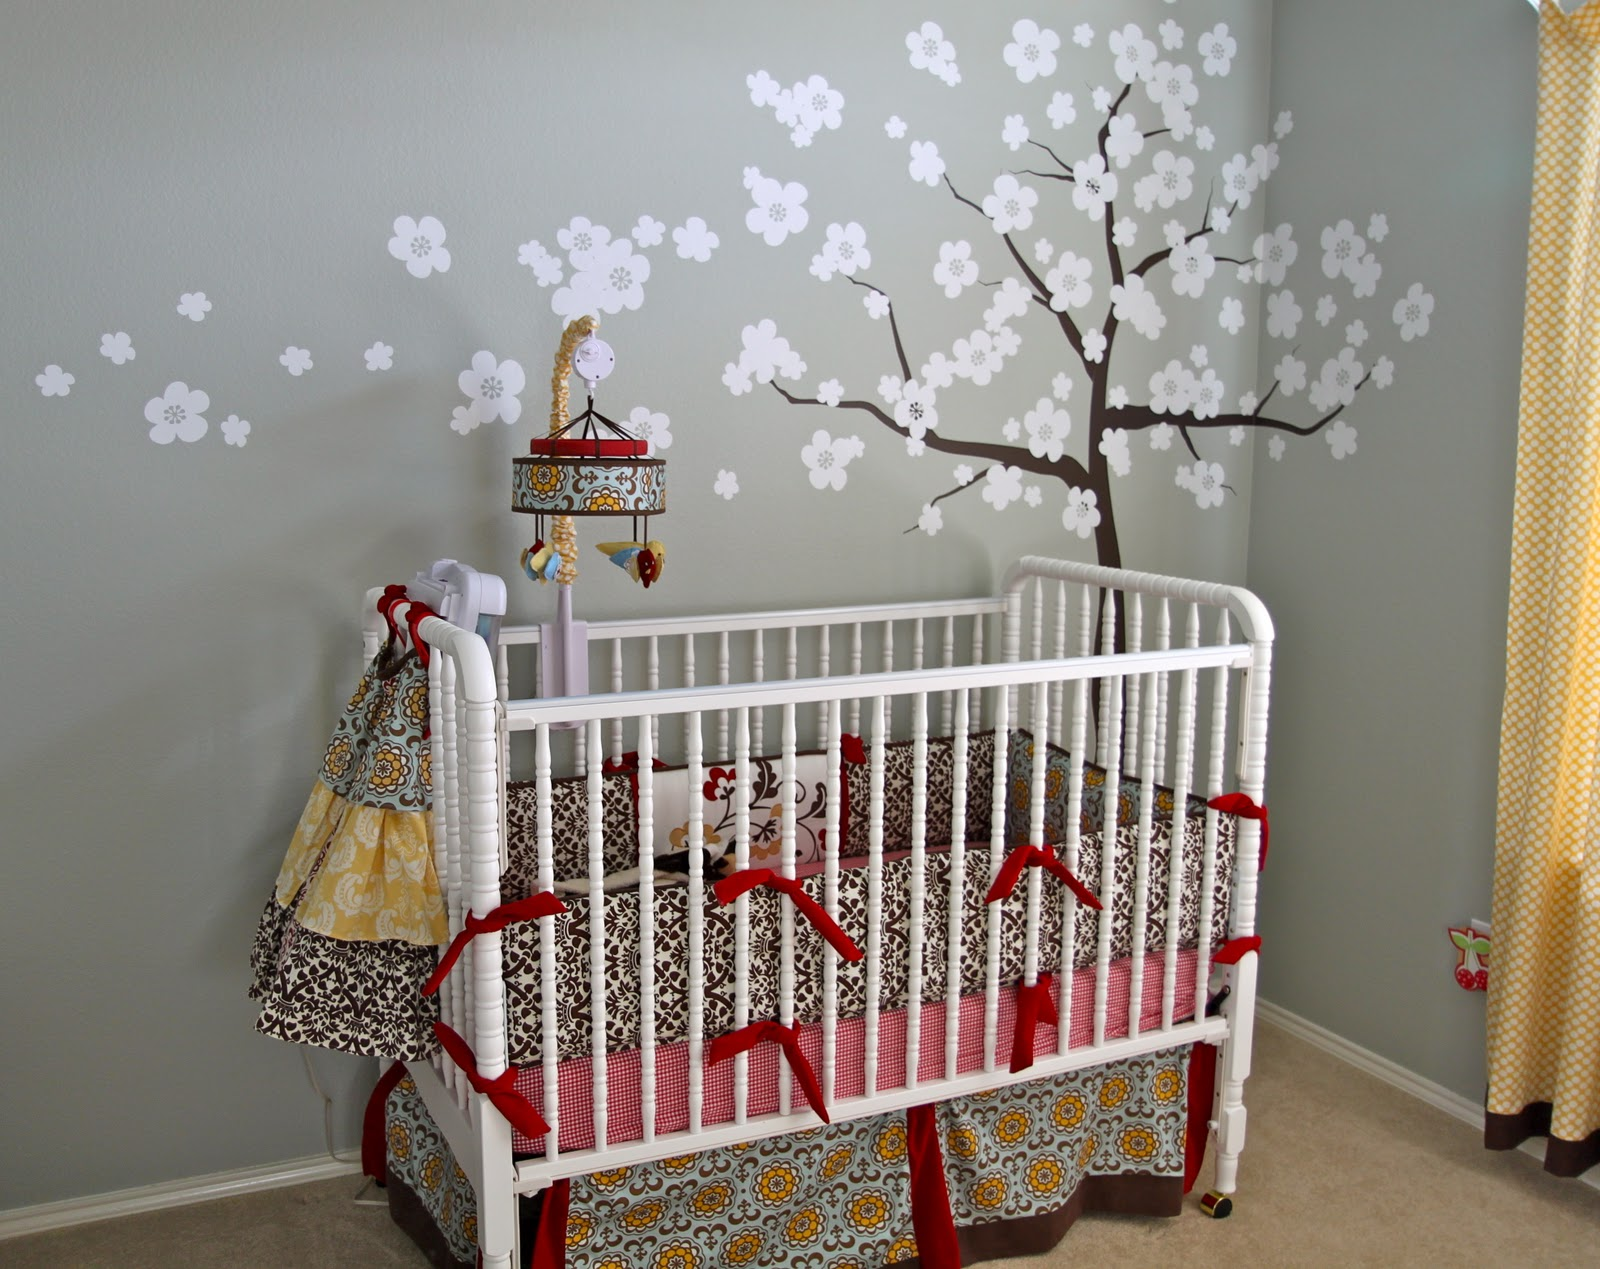 Diy Crafts For Baby Room: Baby Nursery: It's Quirky And So Cute!